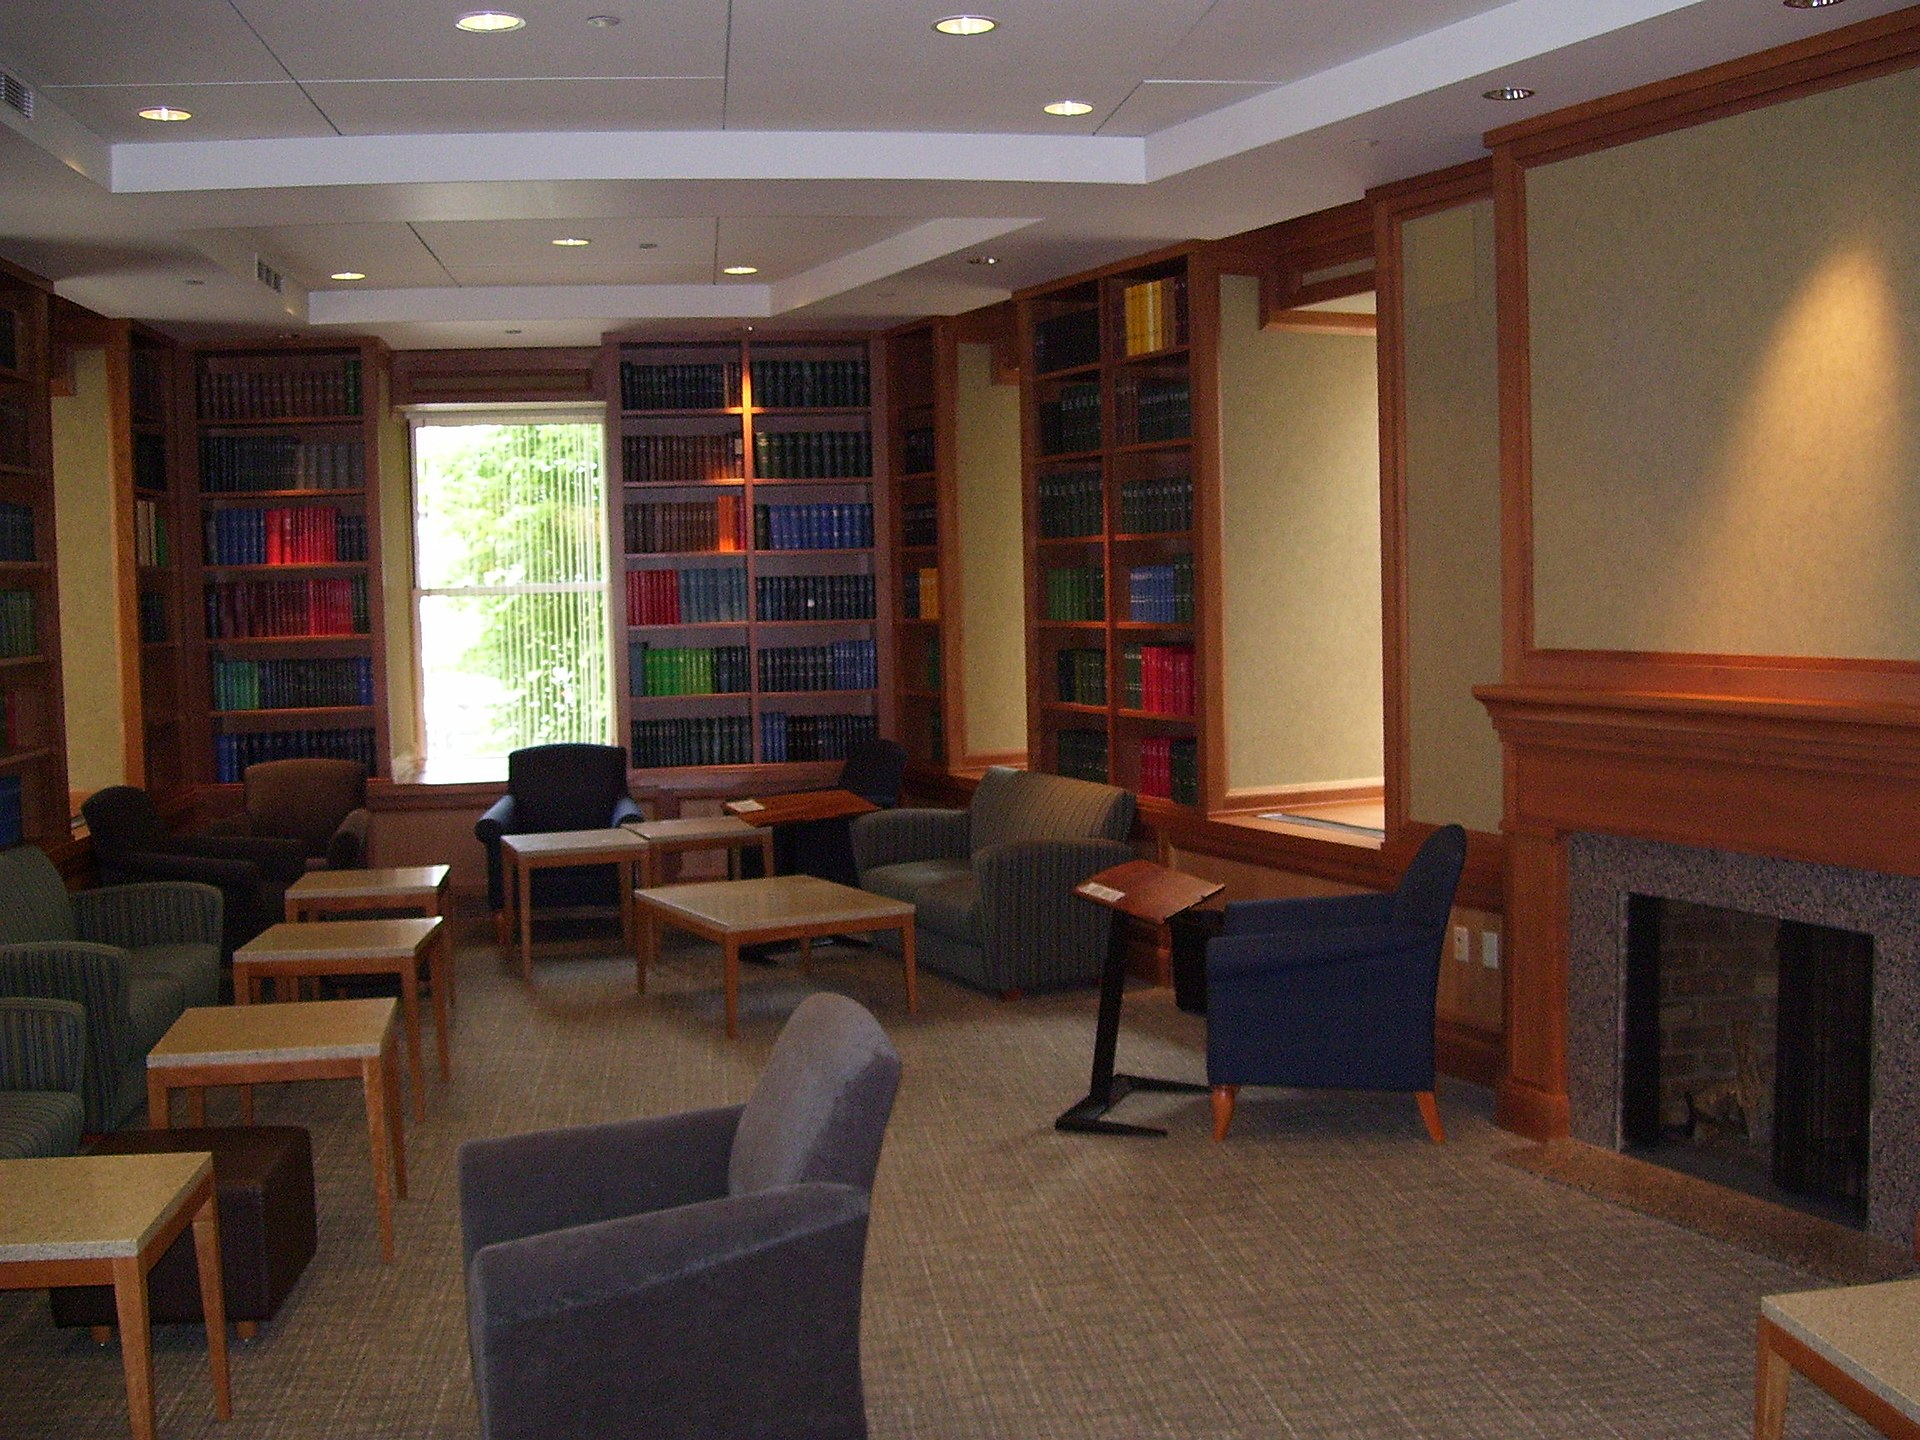 1920px-Suffolk_University_Sawyer_Library.jpg